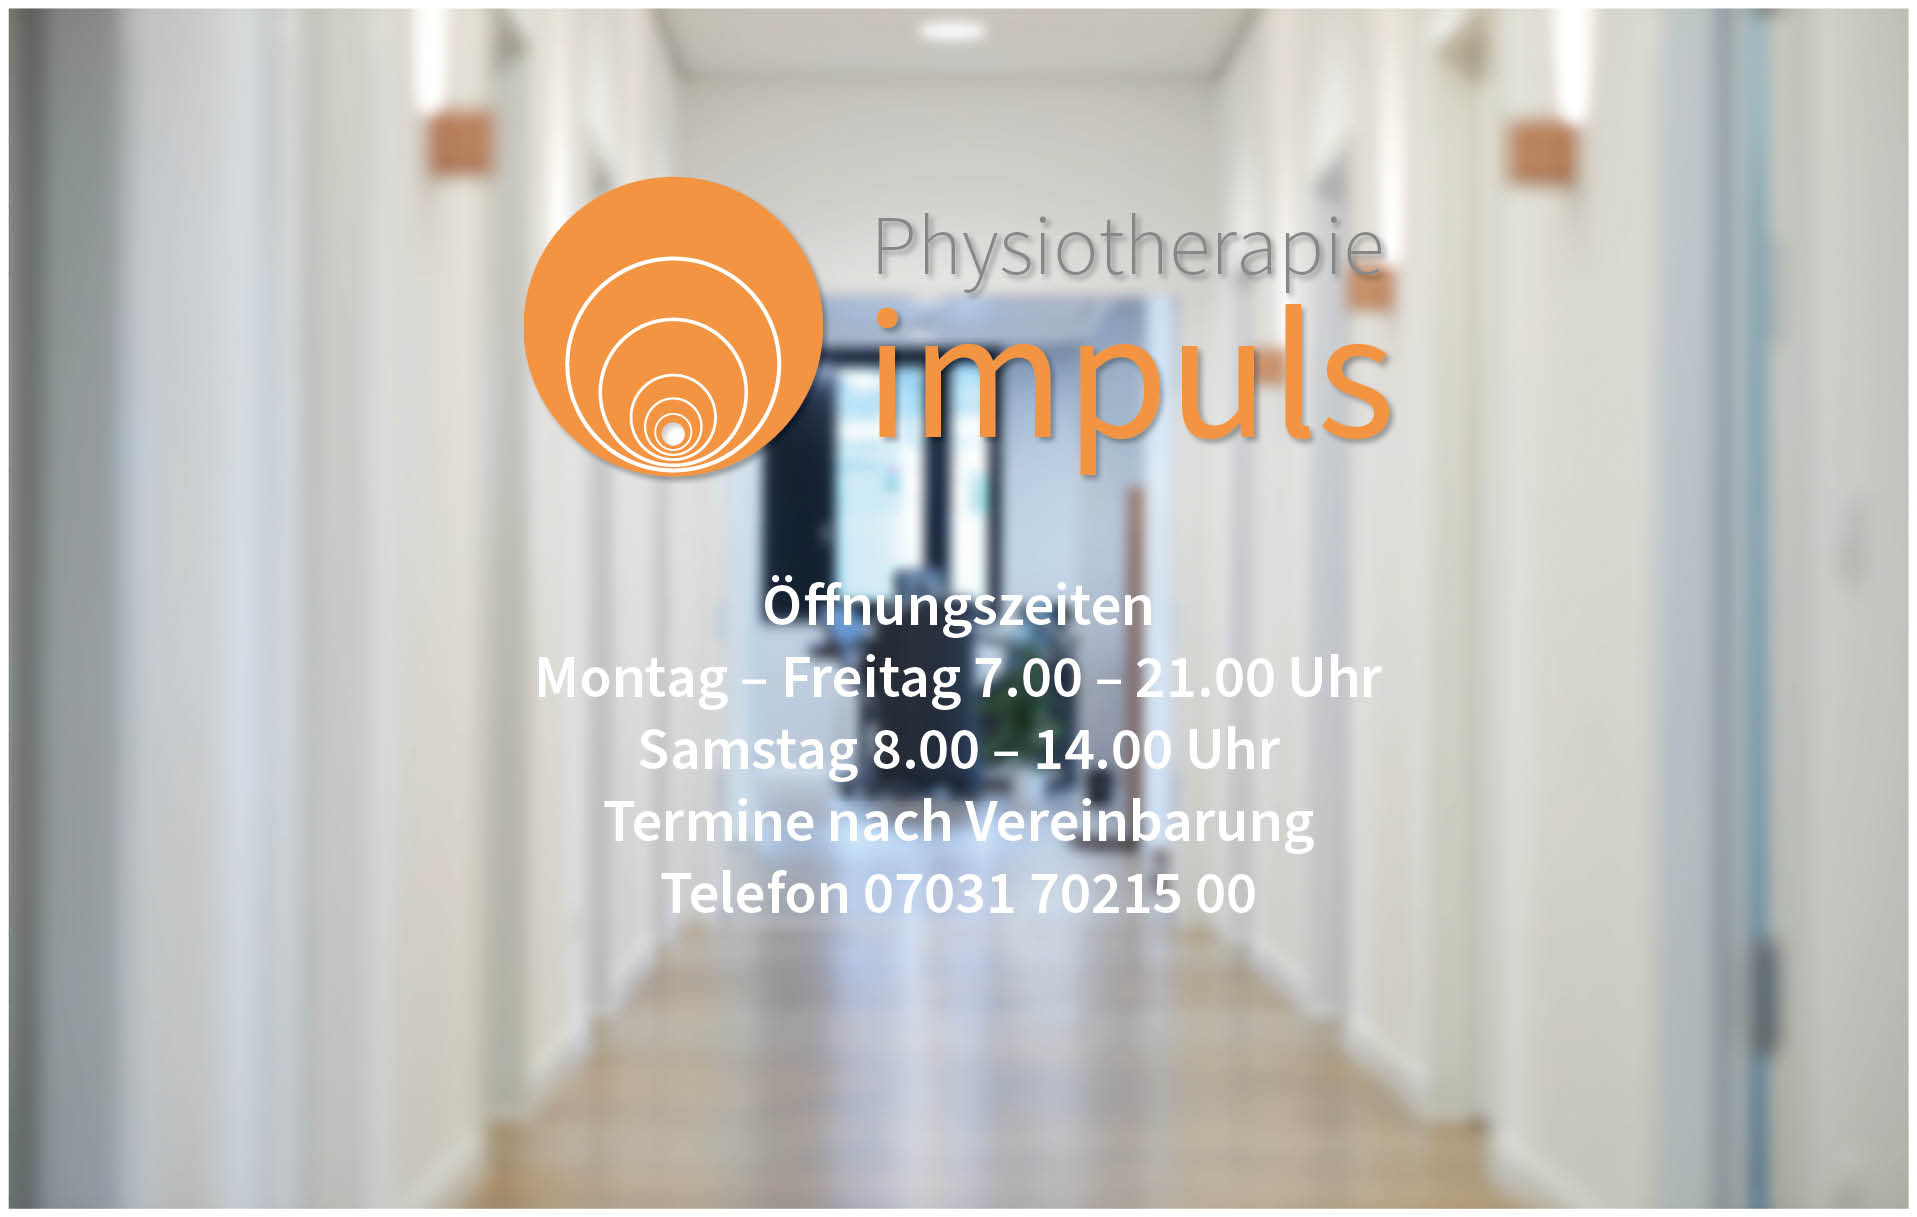 Physiotherapie impuls in Böblingen